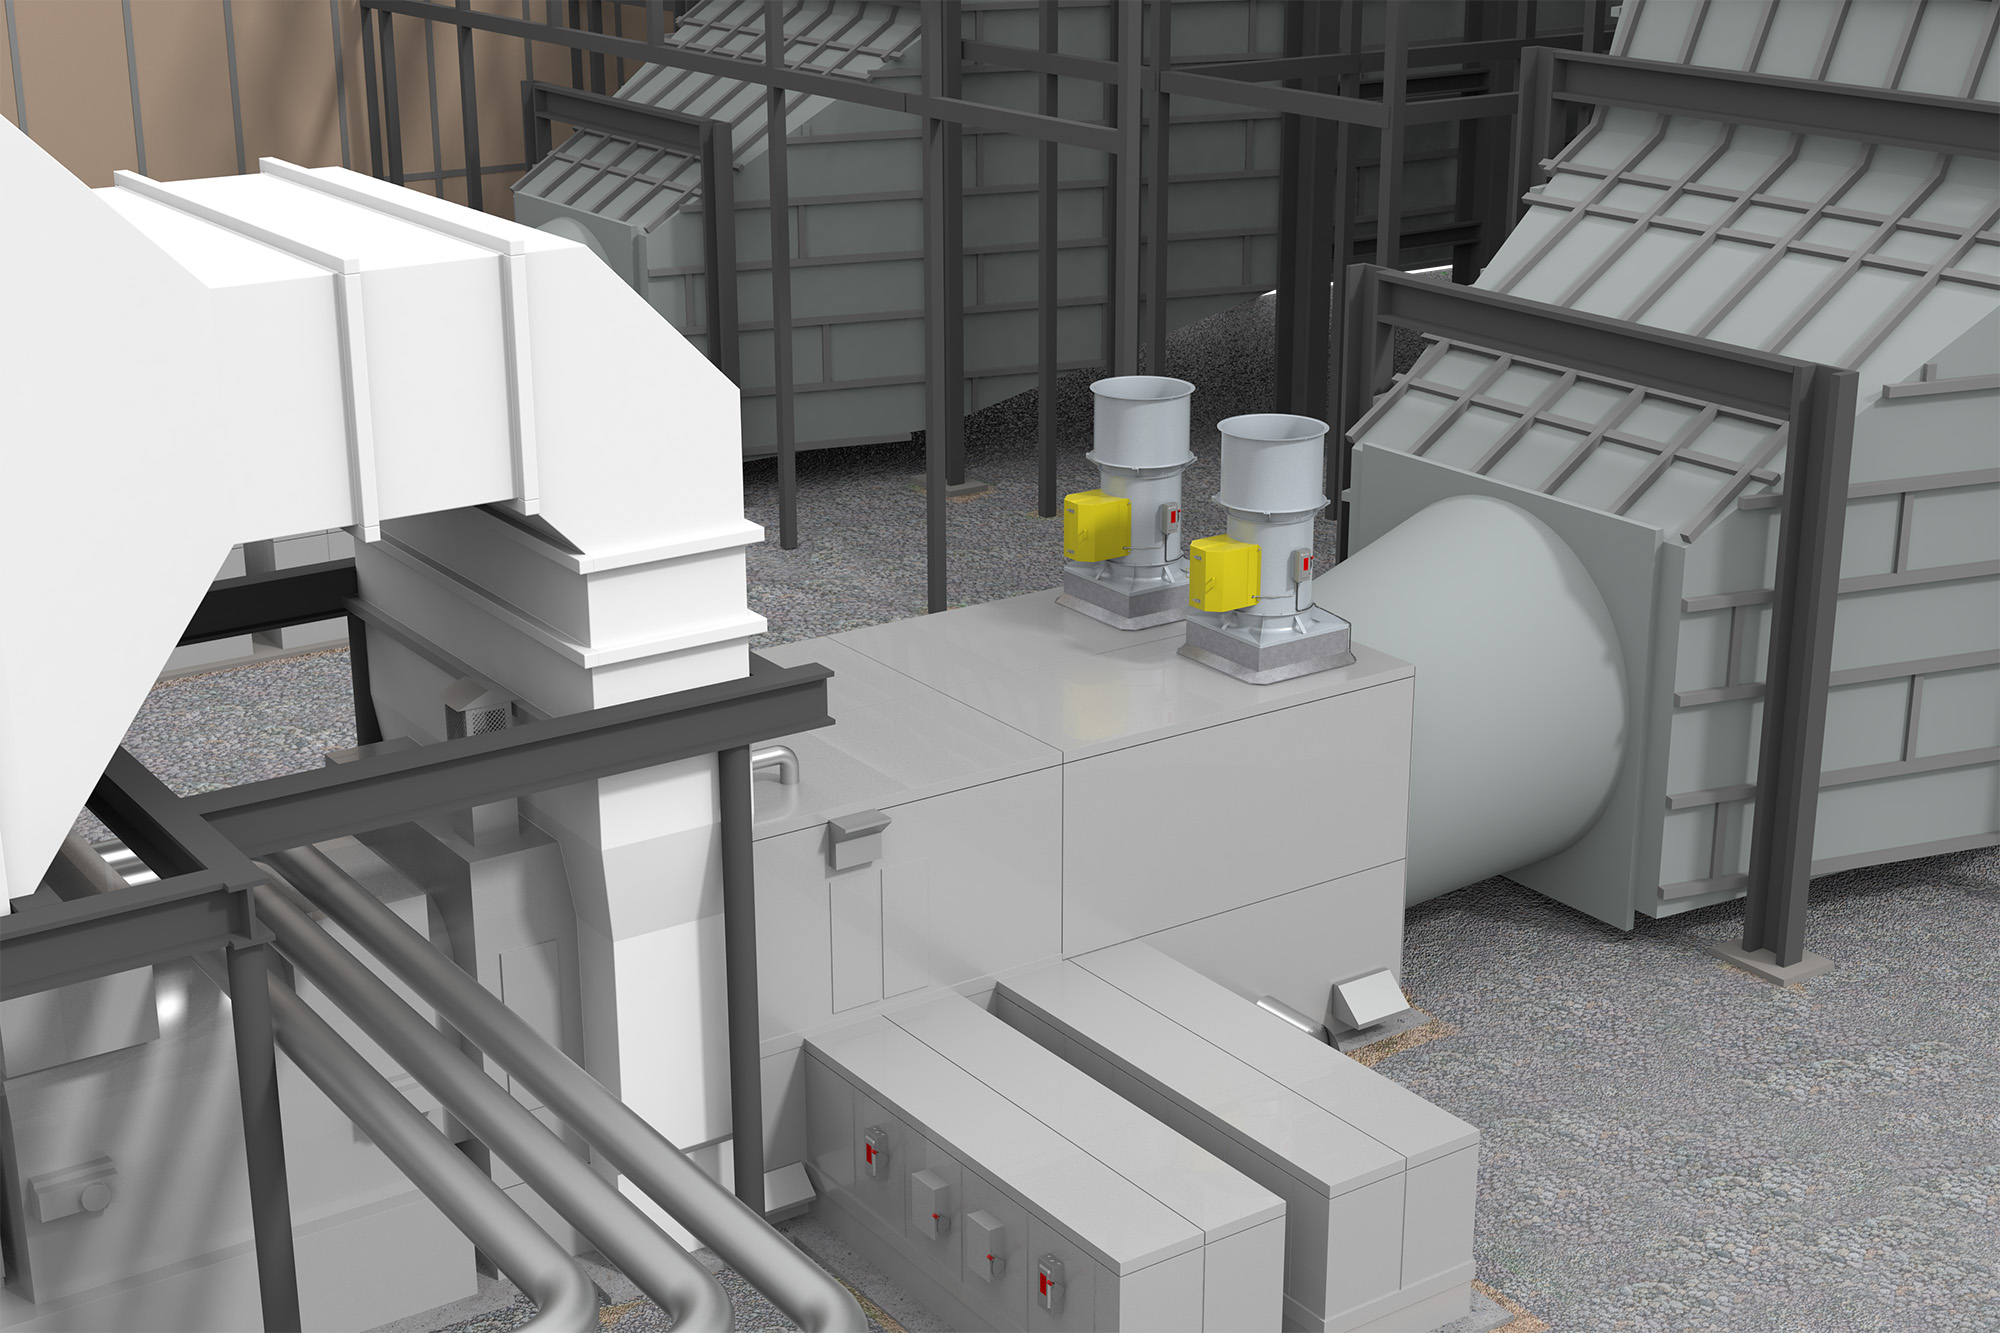 VJ Gas Turbine Plant (Application) Modo Rendering